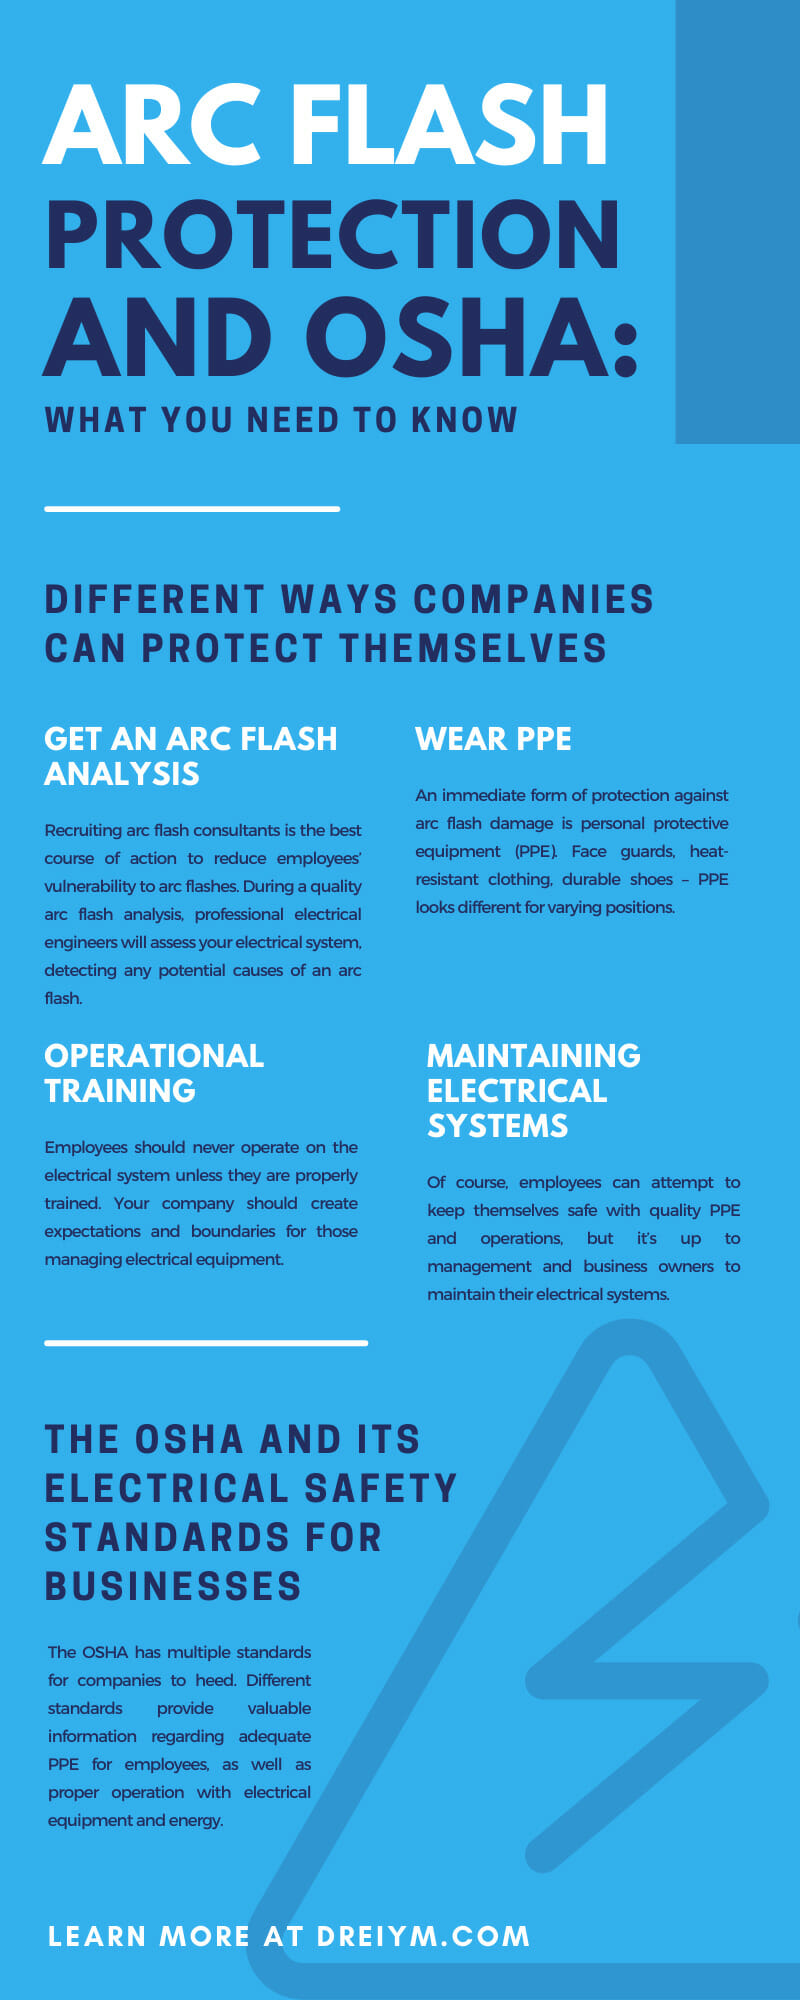 Arc Flash Protection and OSHA: What You Need To Know